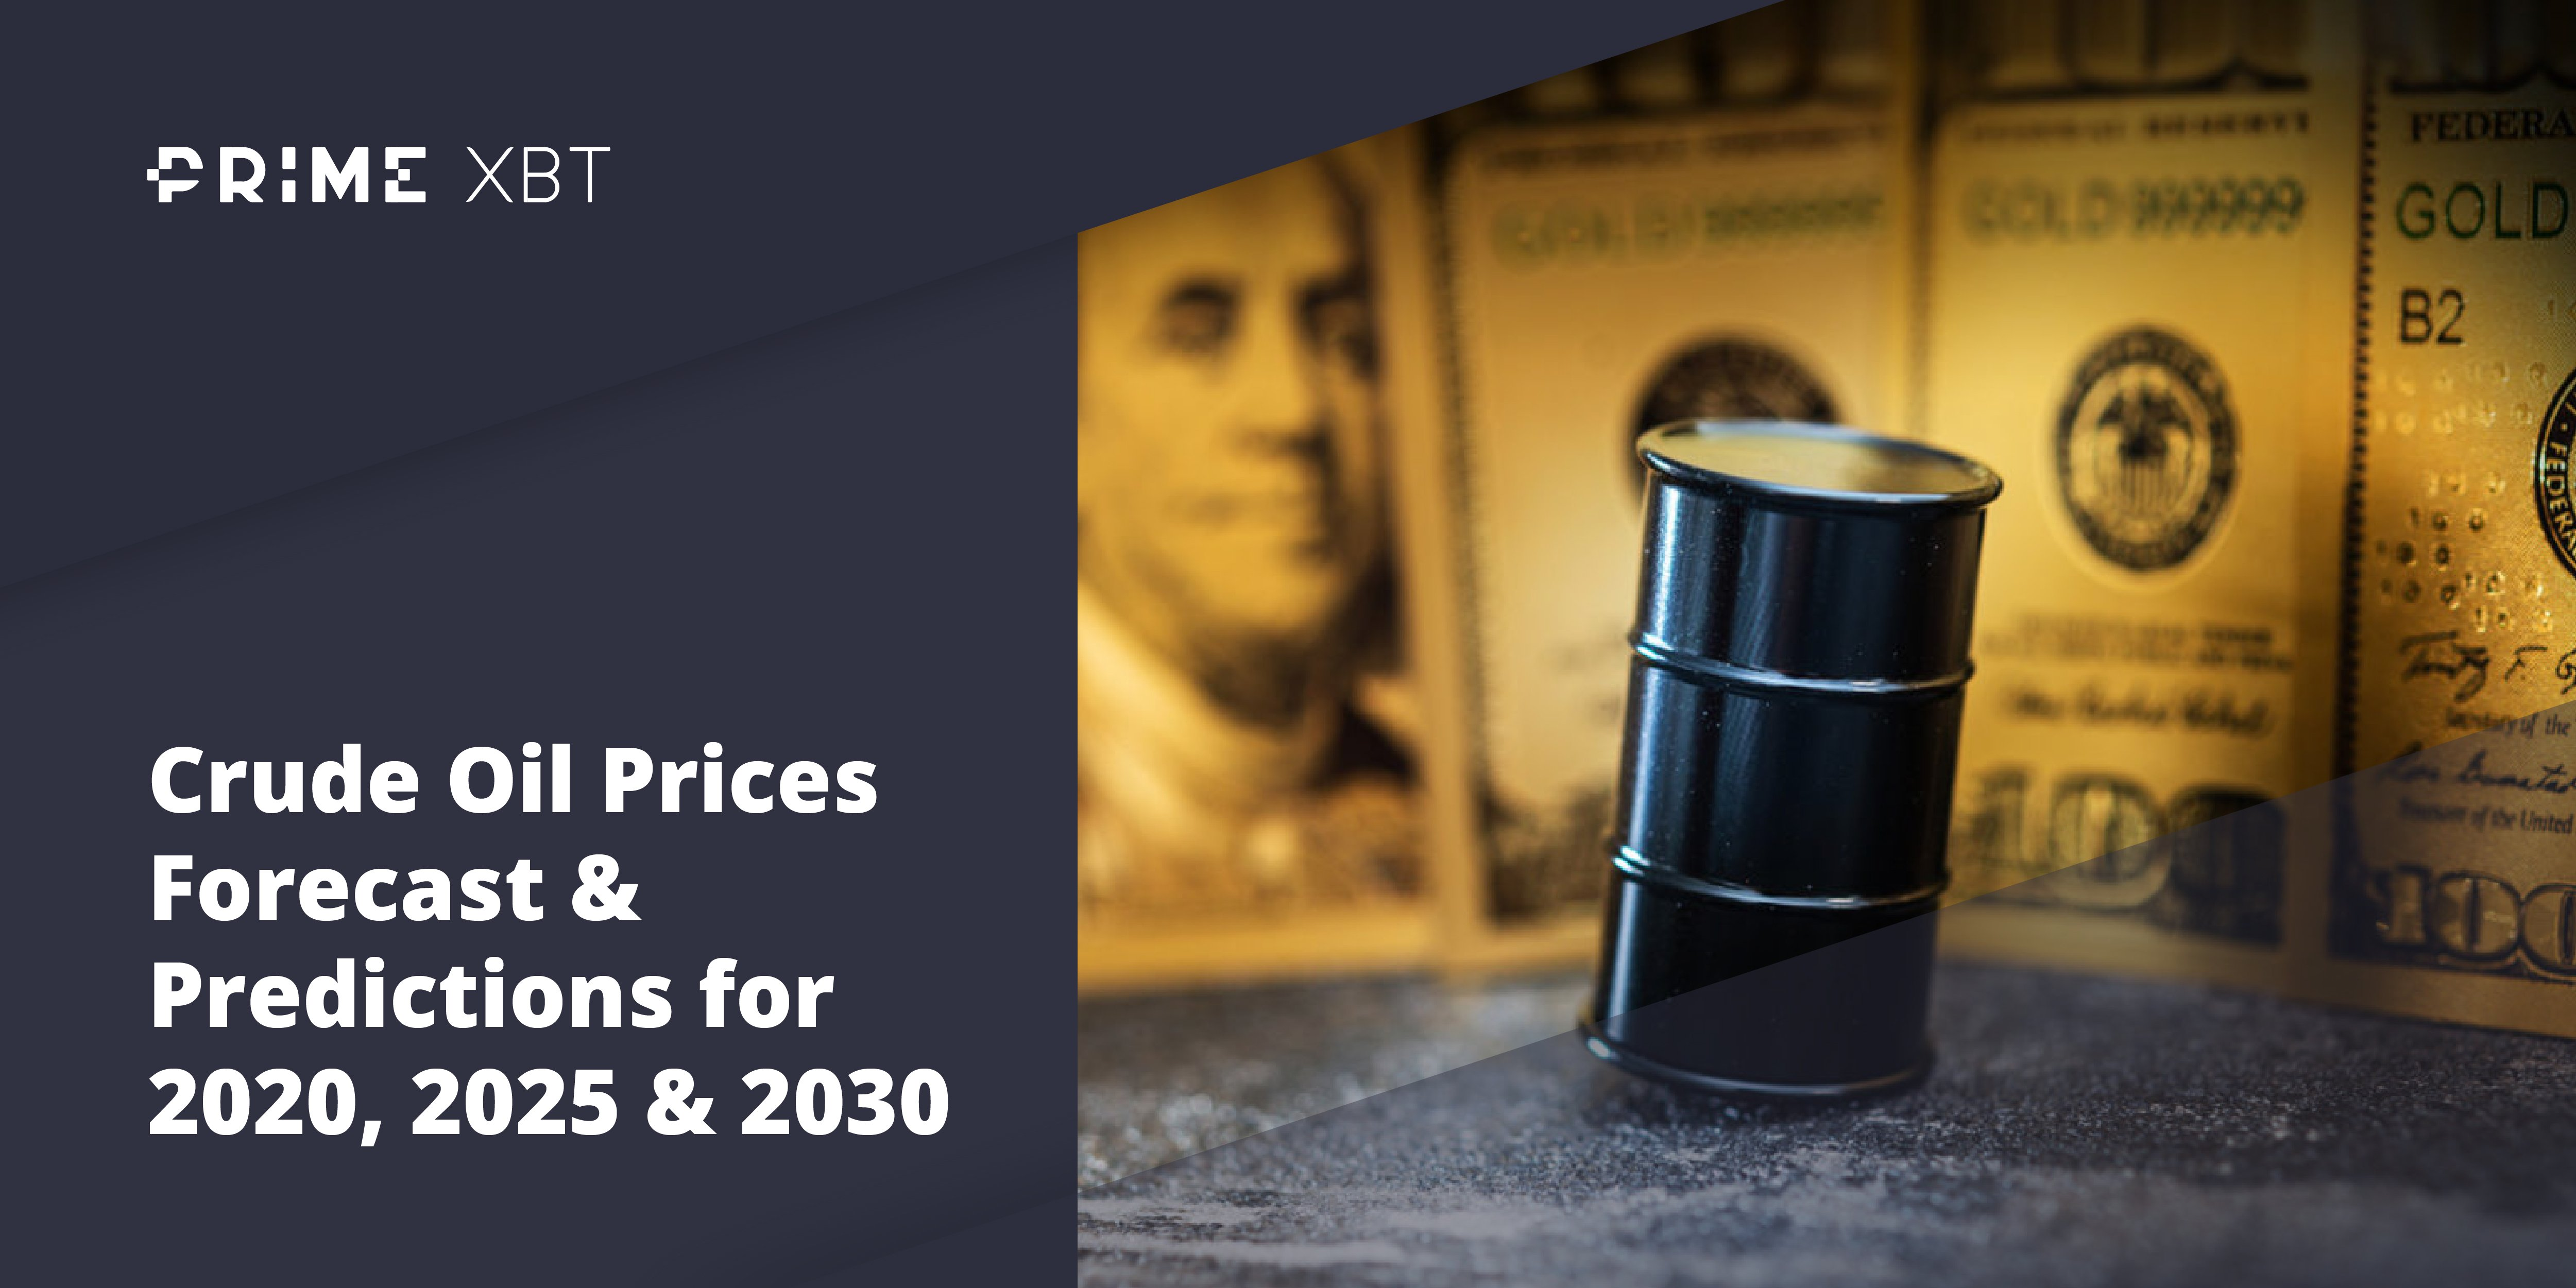 Crude Oil Prices Forecast & Predictions for 2021, 2025 & 2030 - oil1